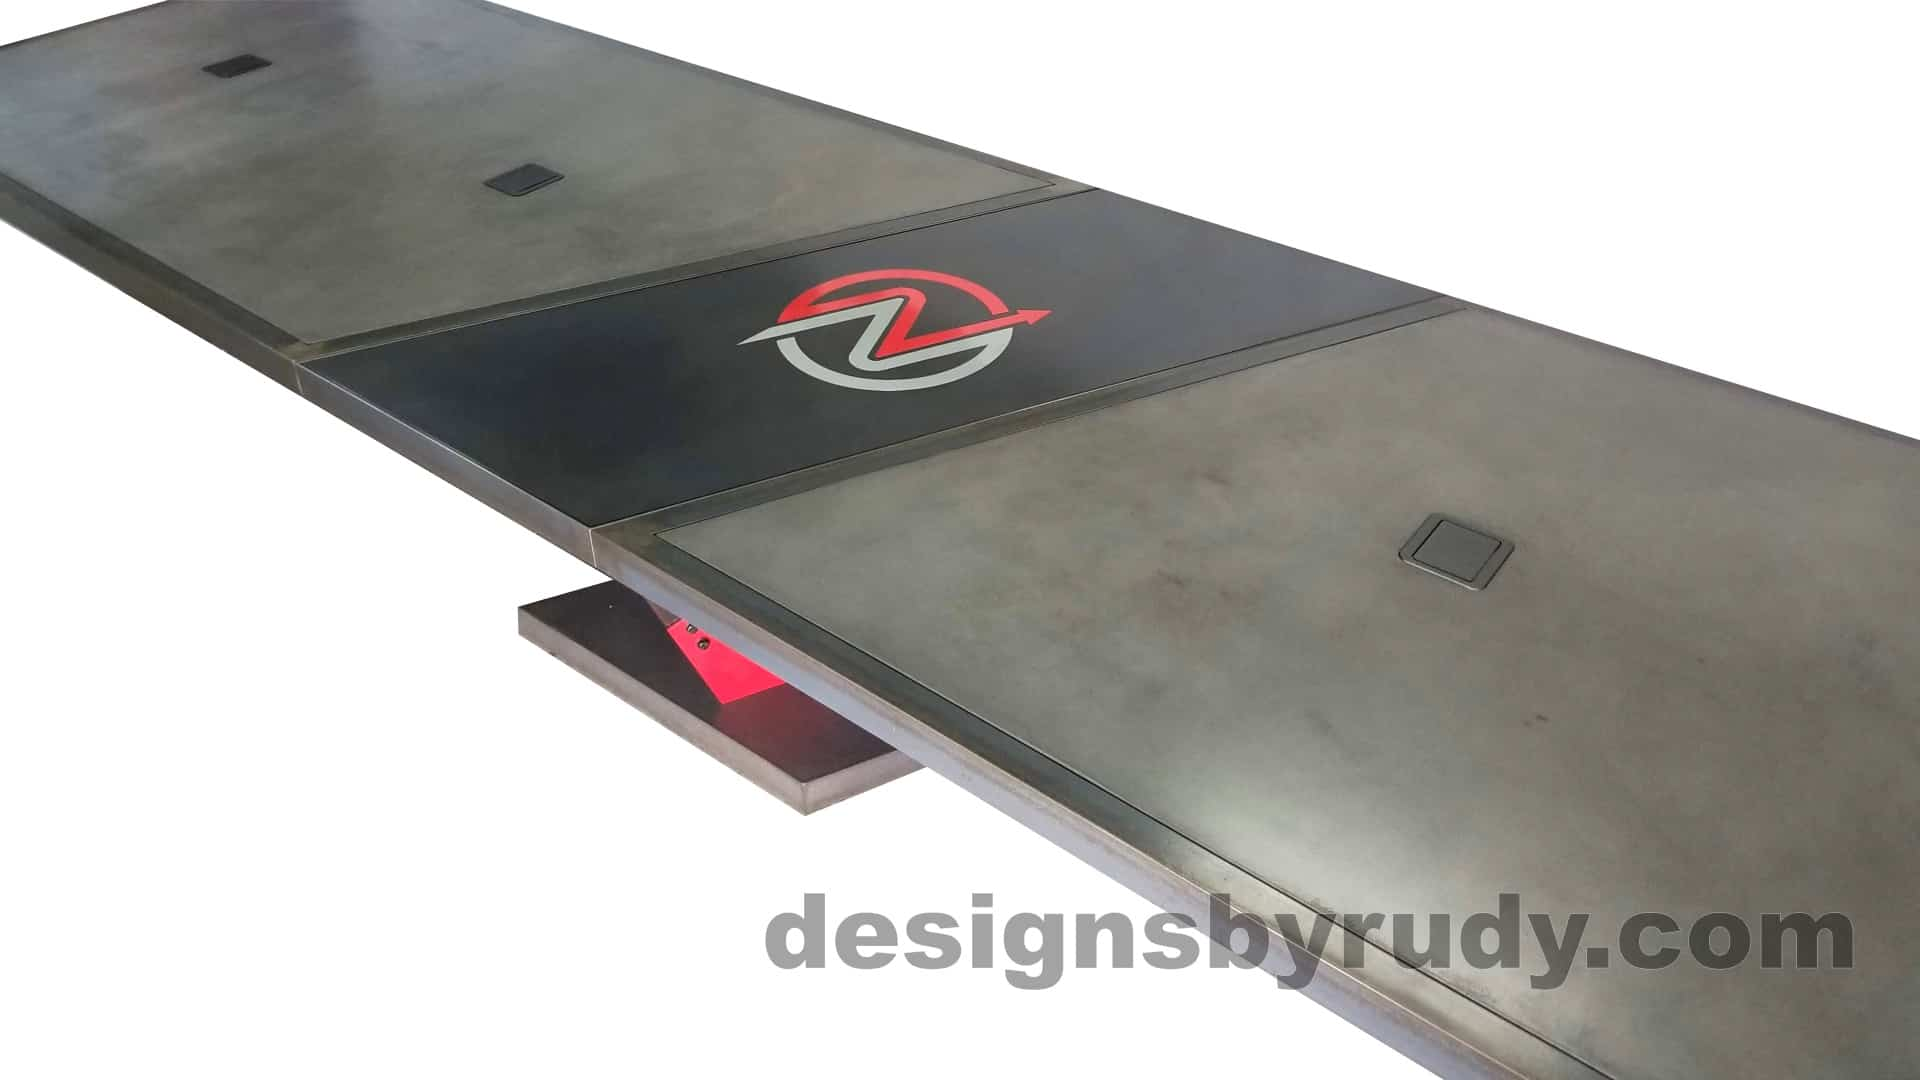 7 Steel and concrete conference table, design and fabrication by Designs by Rudy, top angle view